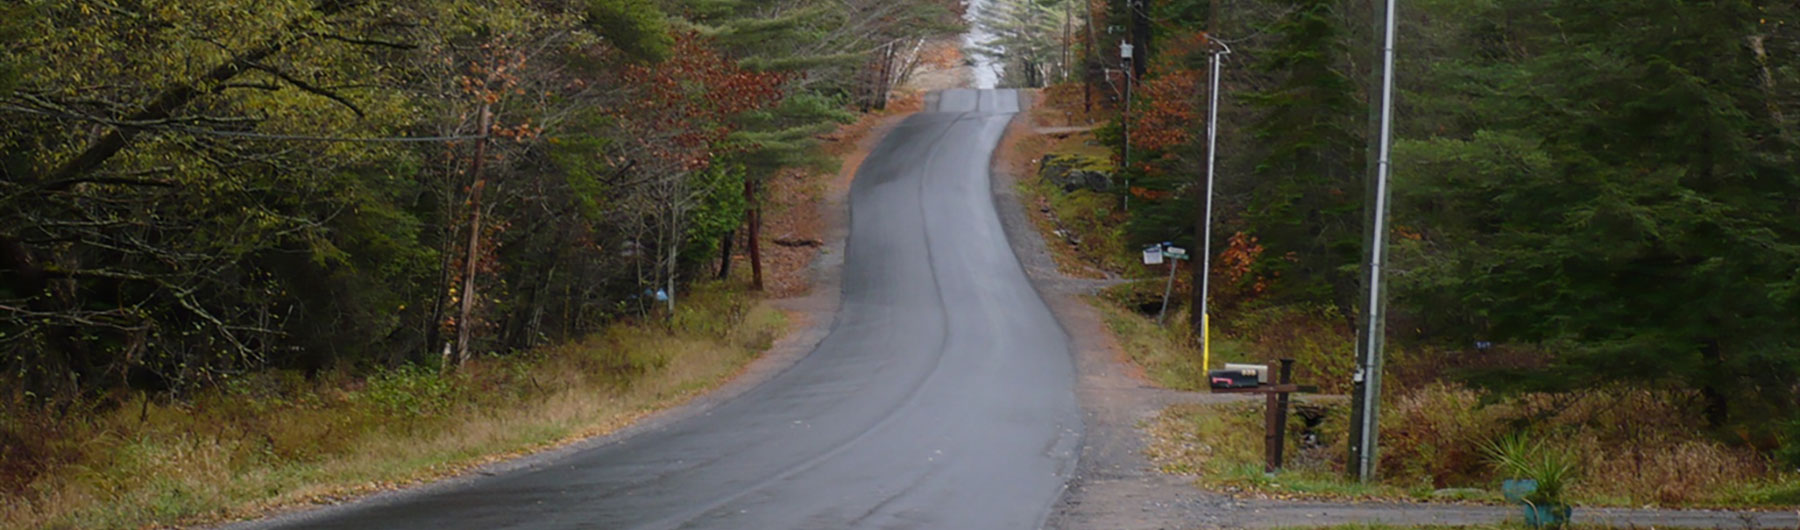 paved road going up a hill